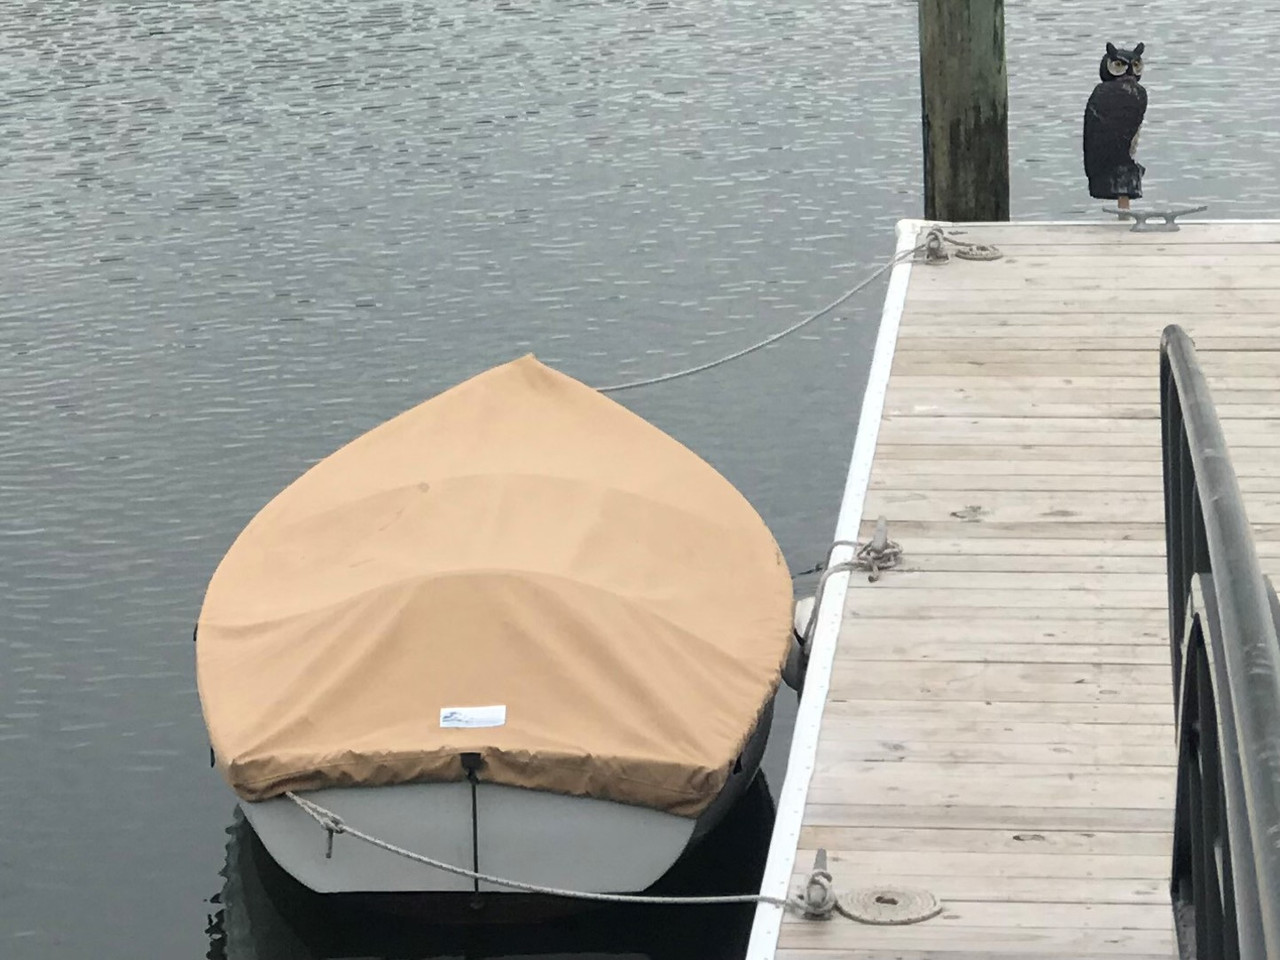 Use SLO Sail and Canvas' Top Deck Boat Cover to protect your boat while in storage, in the water, or while towing.